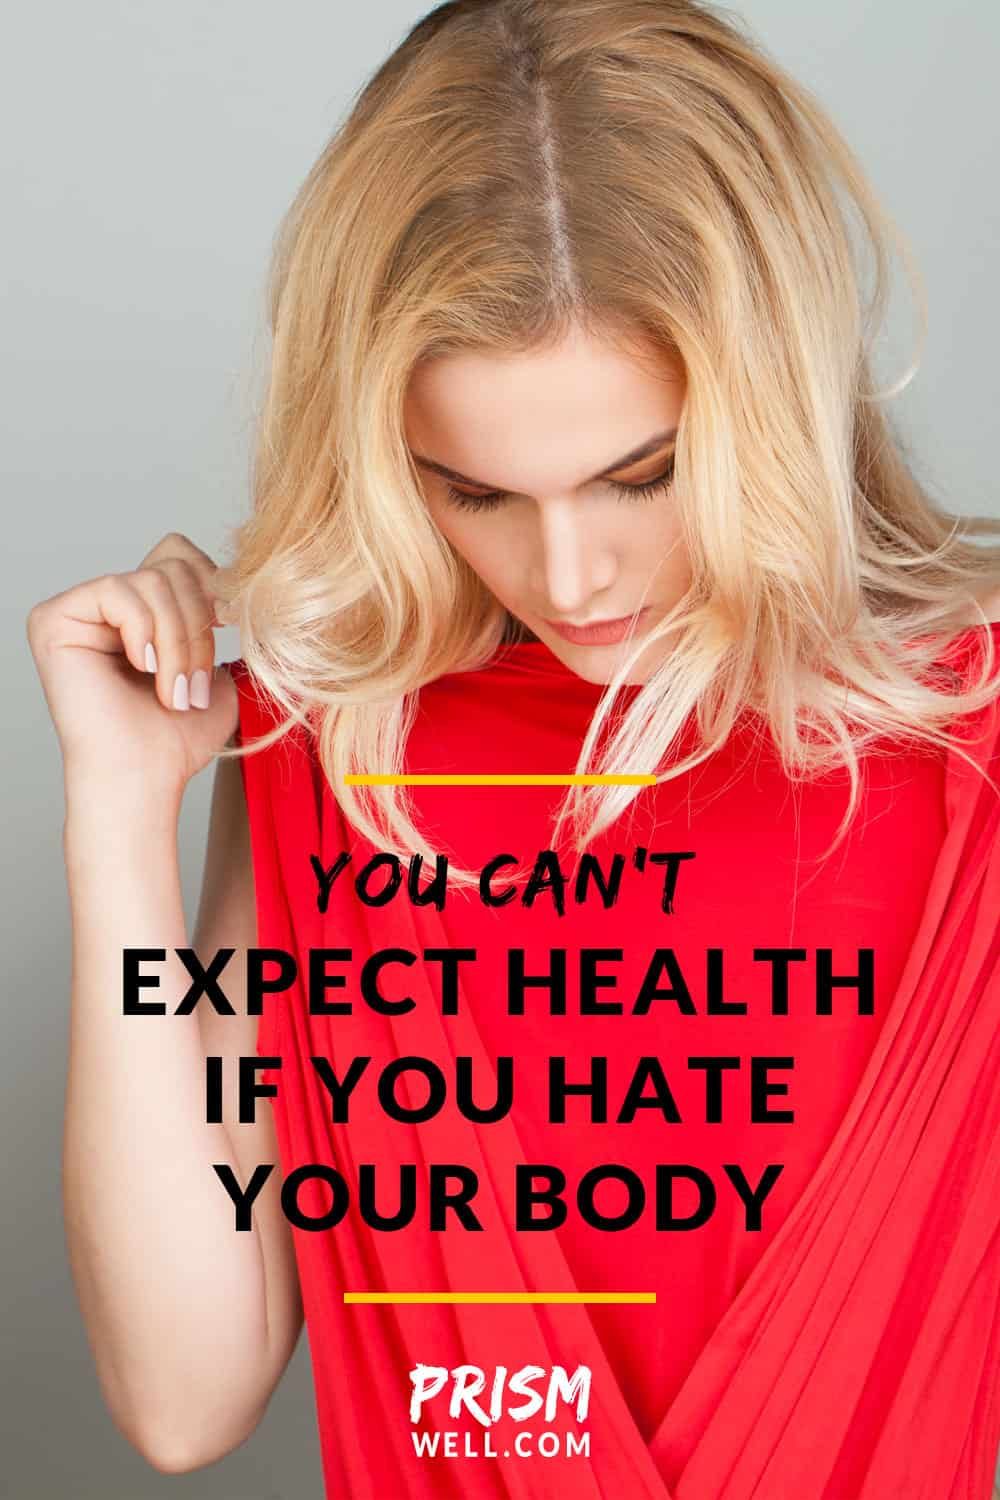 Our bodies carry inner emotional scars from wounds we've given ourselves. Many digestive issues, hormonal imbalances, fertility problems, and other chronic conditions are fed when you hate your body. We can't expect our bodies to magically give us health when we've spent years giving them the opposite.